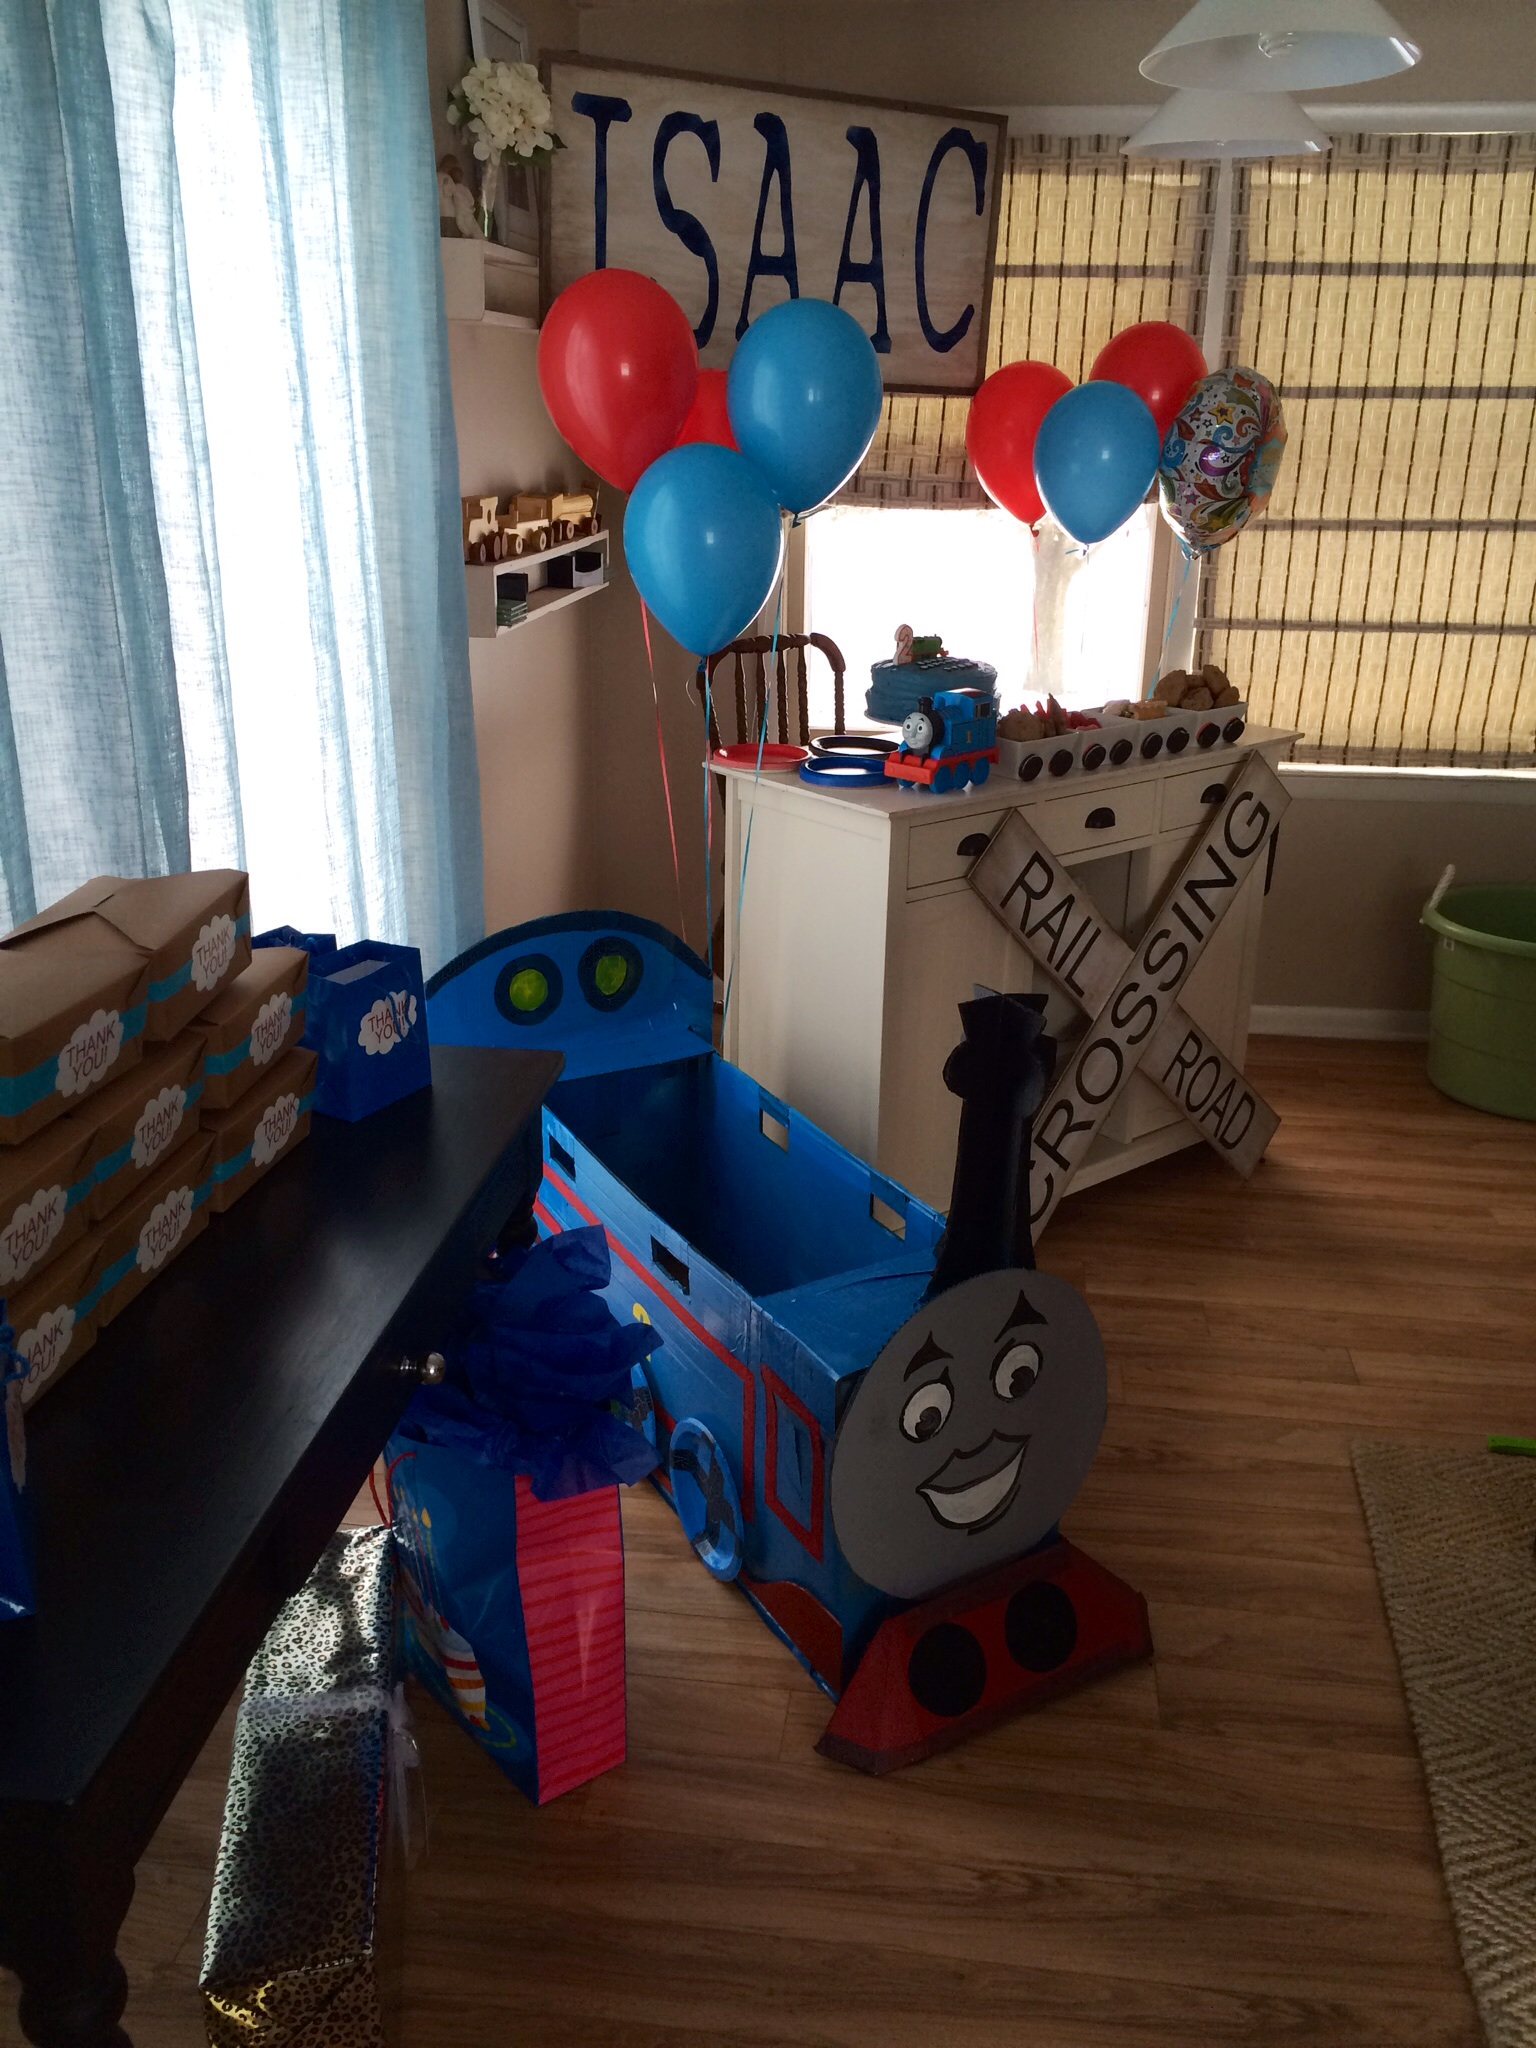 Thomas the train birthday party all set up.